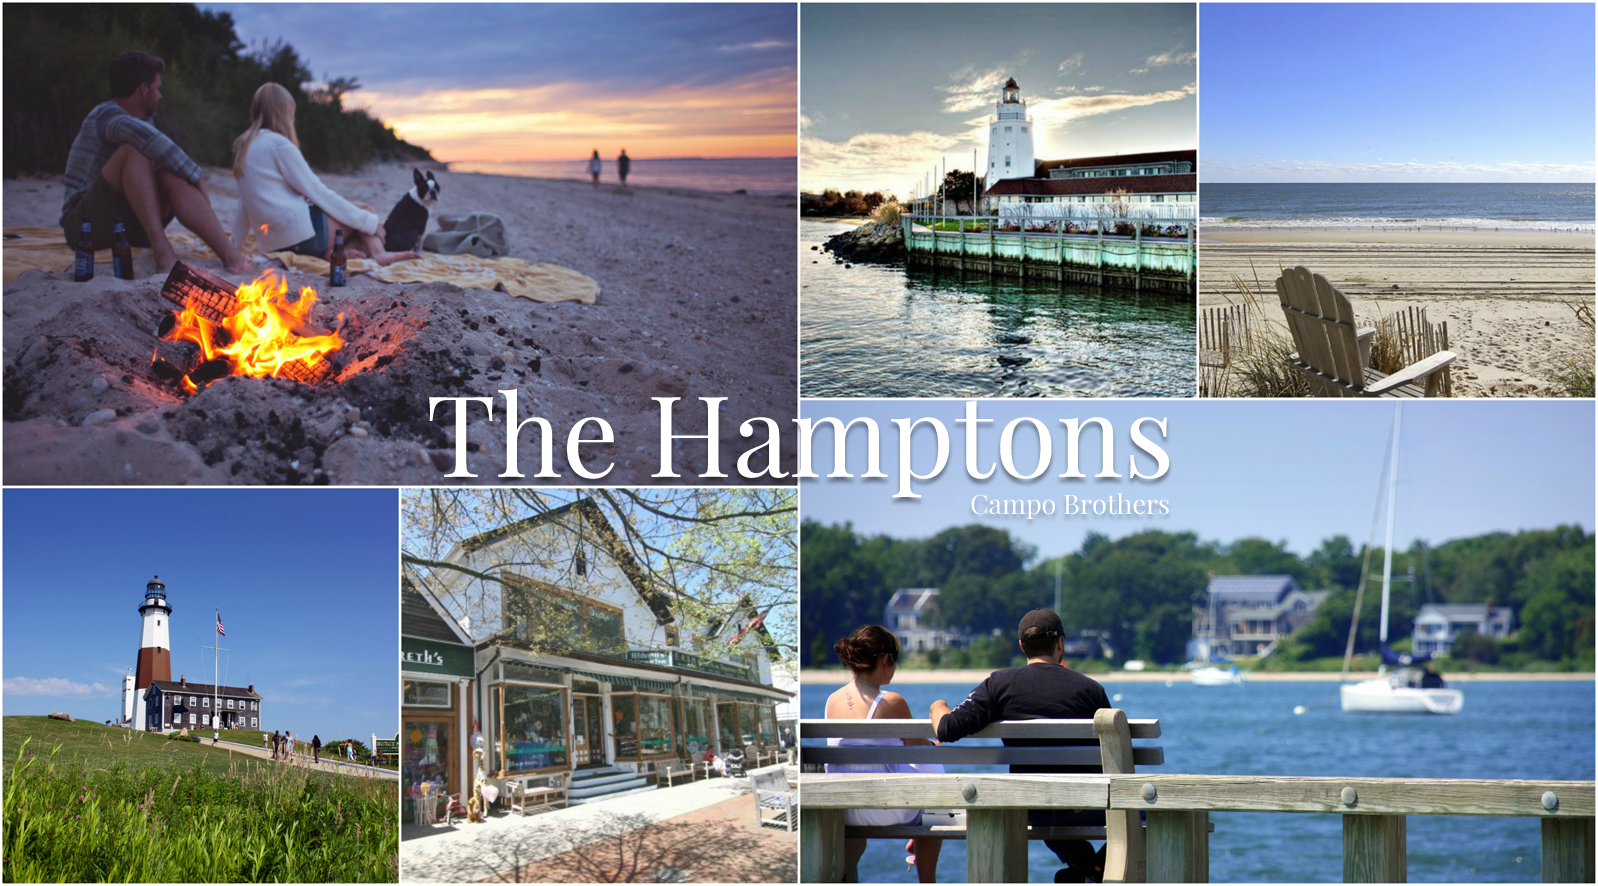 Campo Brothers At The Hamptons